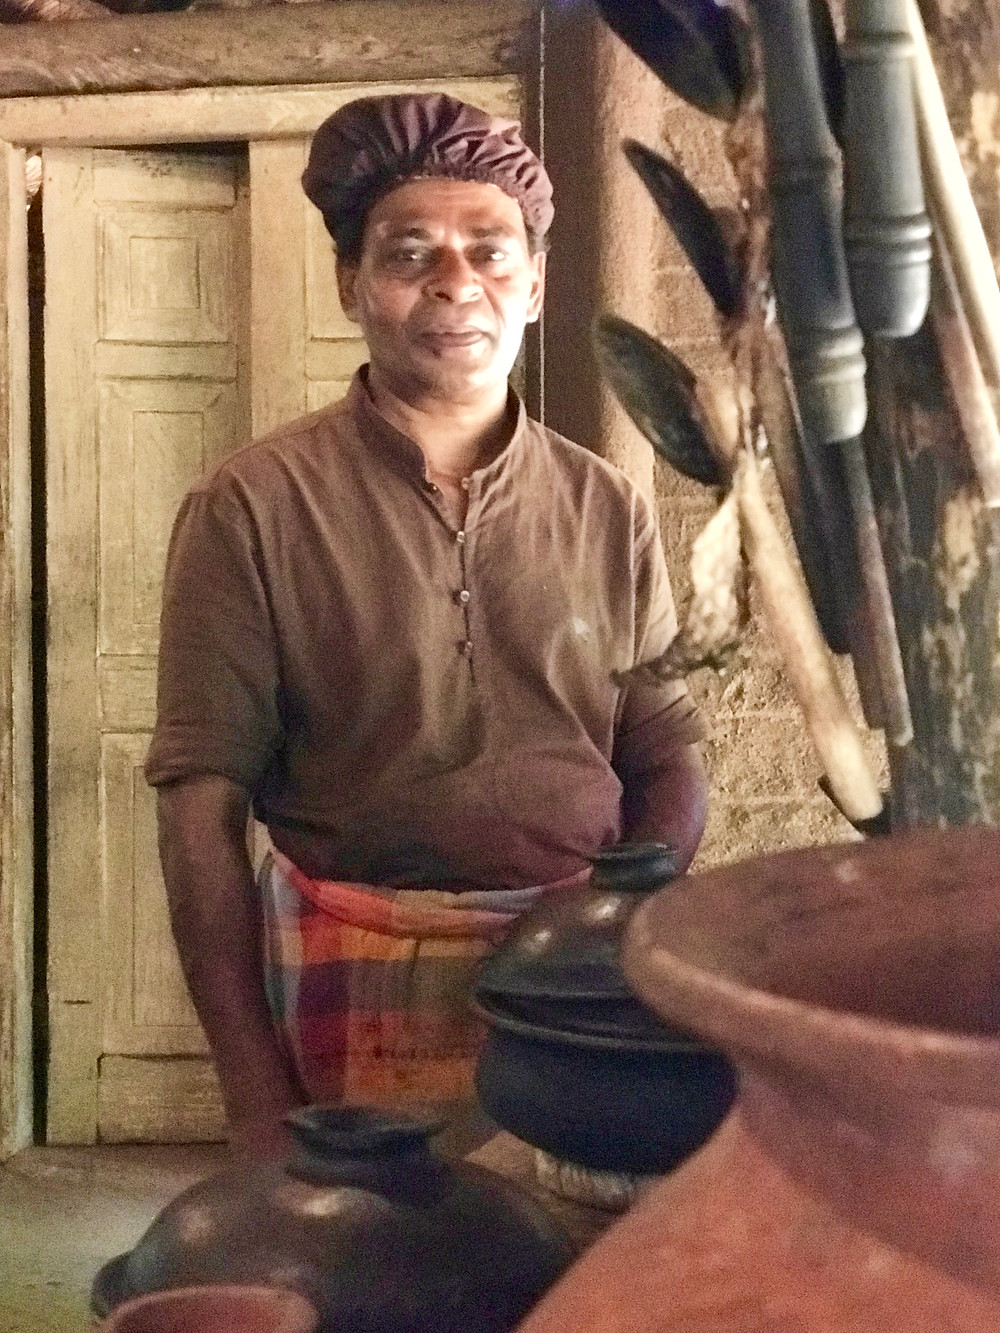 Sunil in his traditional ktchen of clay pots and wood-fired ovens